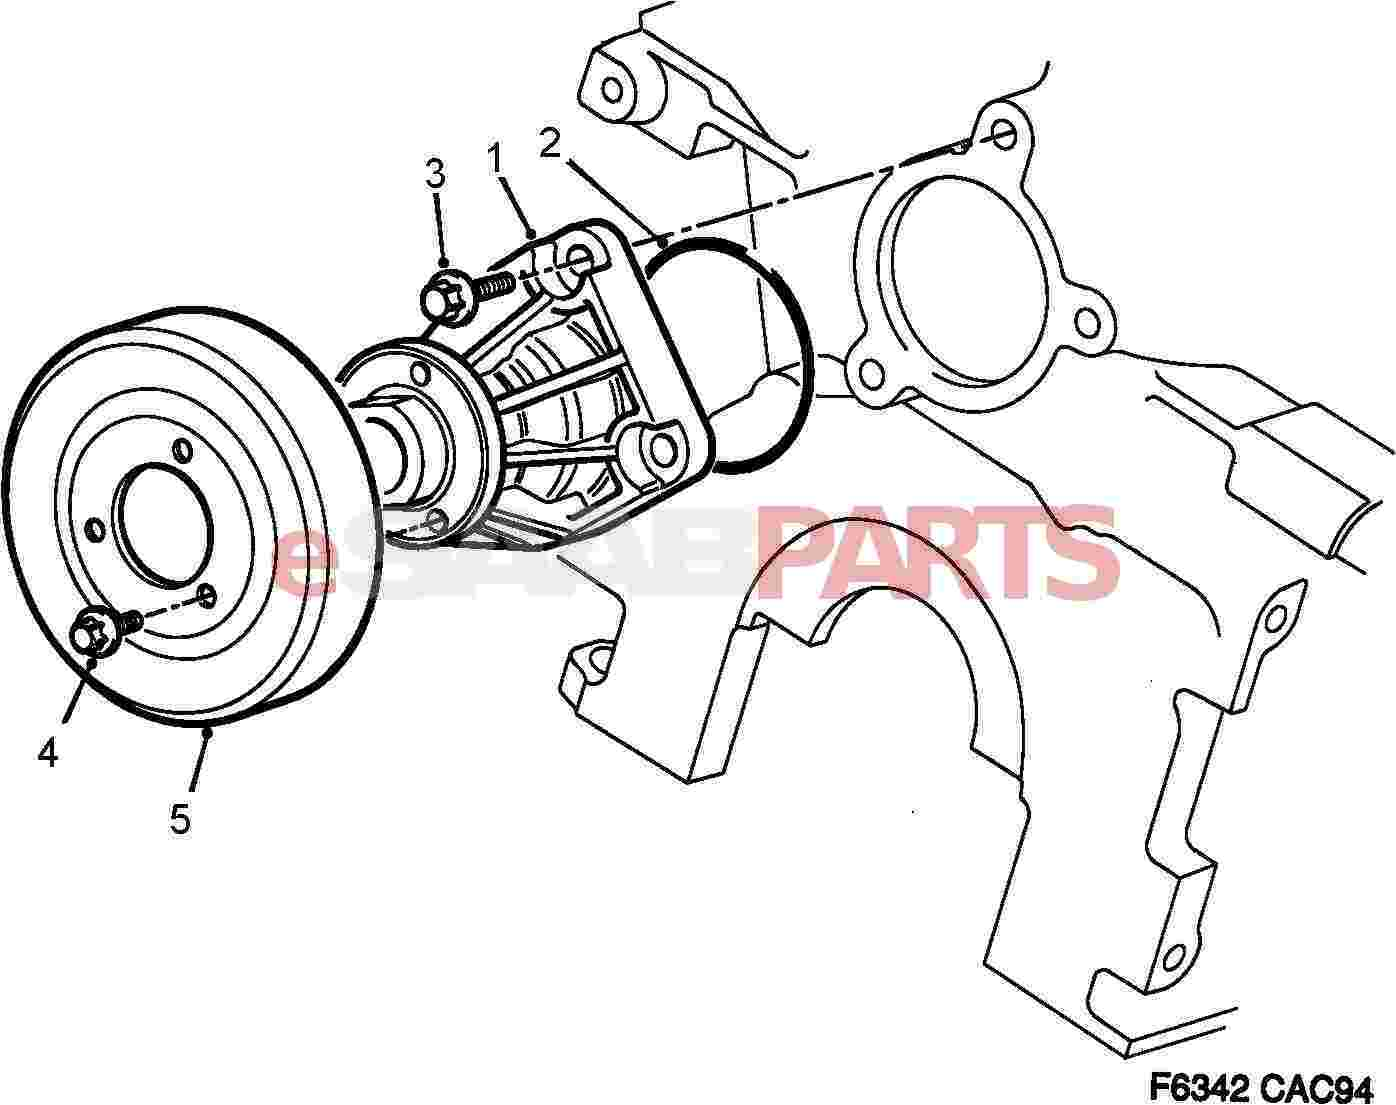 Fiat 500 front suspension furthermore 1995 saab 9000 parts diagram as well 1992 lincoln town car